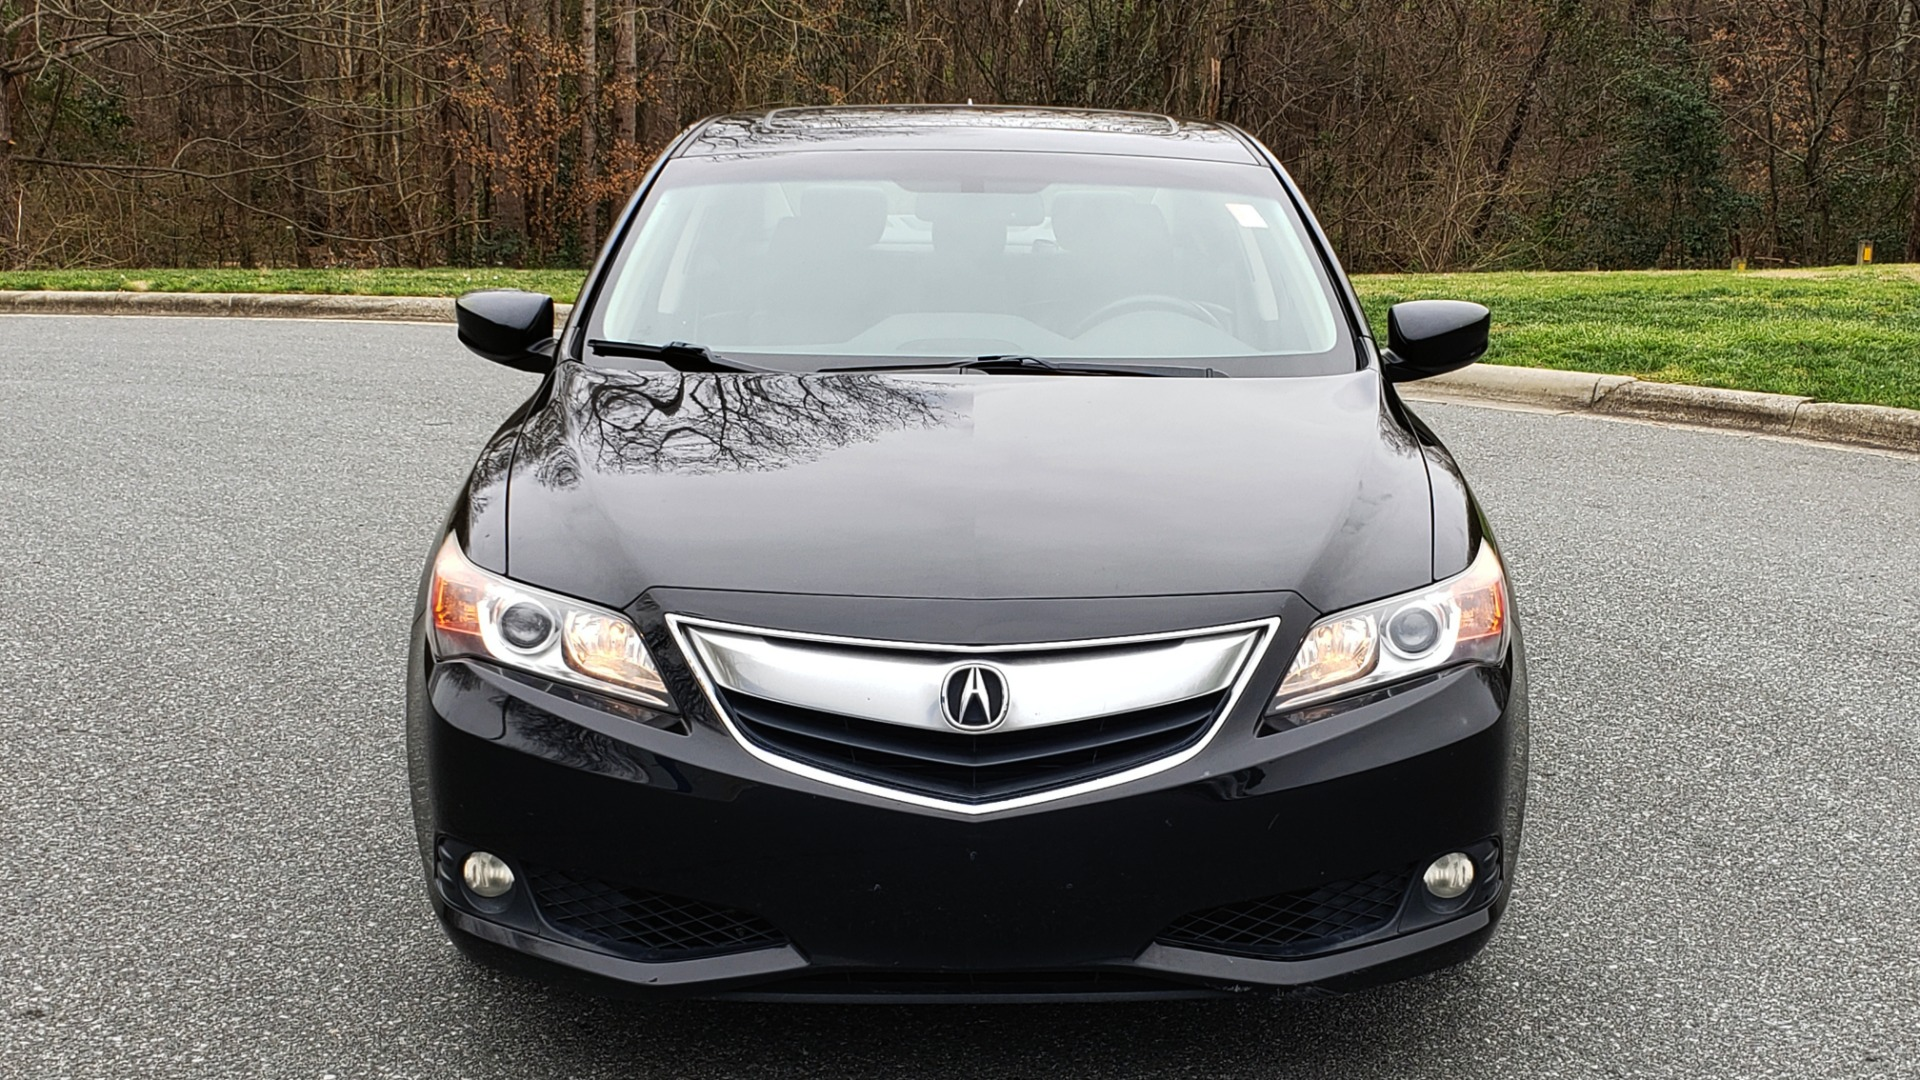 Used 2013 Acura ILX TECH PKG / SUNROOF / NAV / DUAL-ZONE A/C / REARVIEW for sale Sold at Formula Imports in Charlotte NC 28227 20